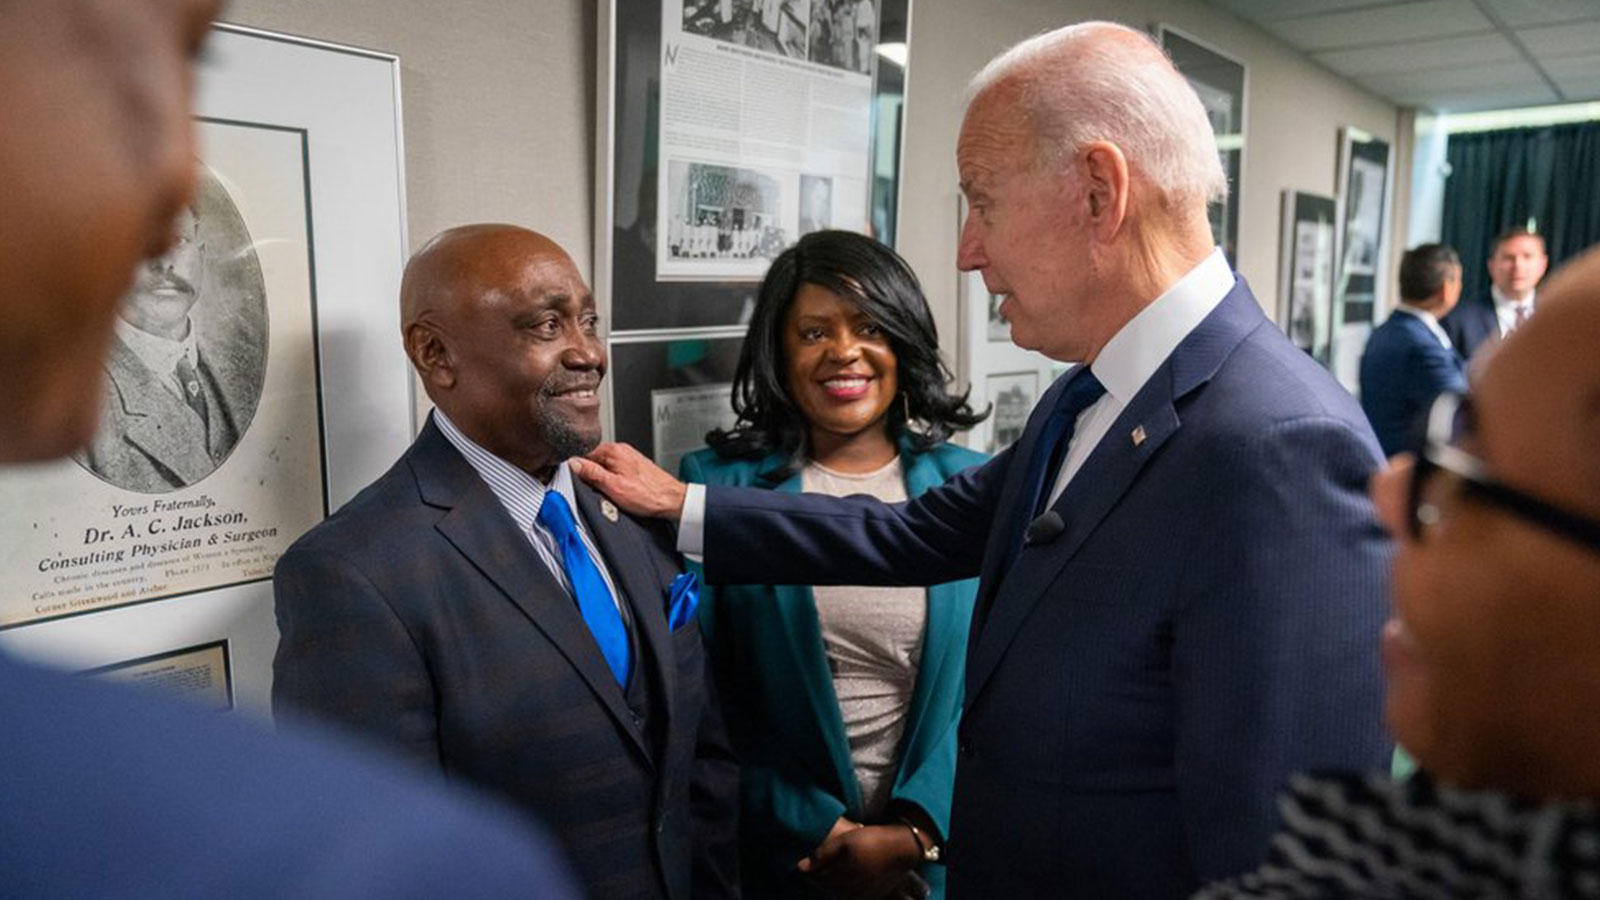 Tiffany Crutcher and her father during their meeting with President Joe Biden in Tulsa, Oklahoma.